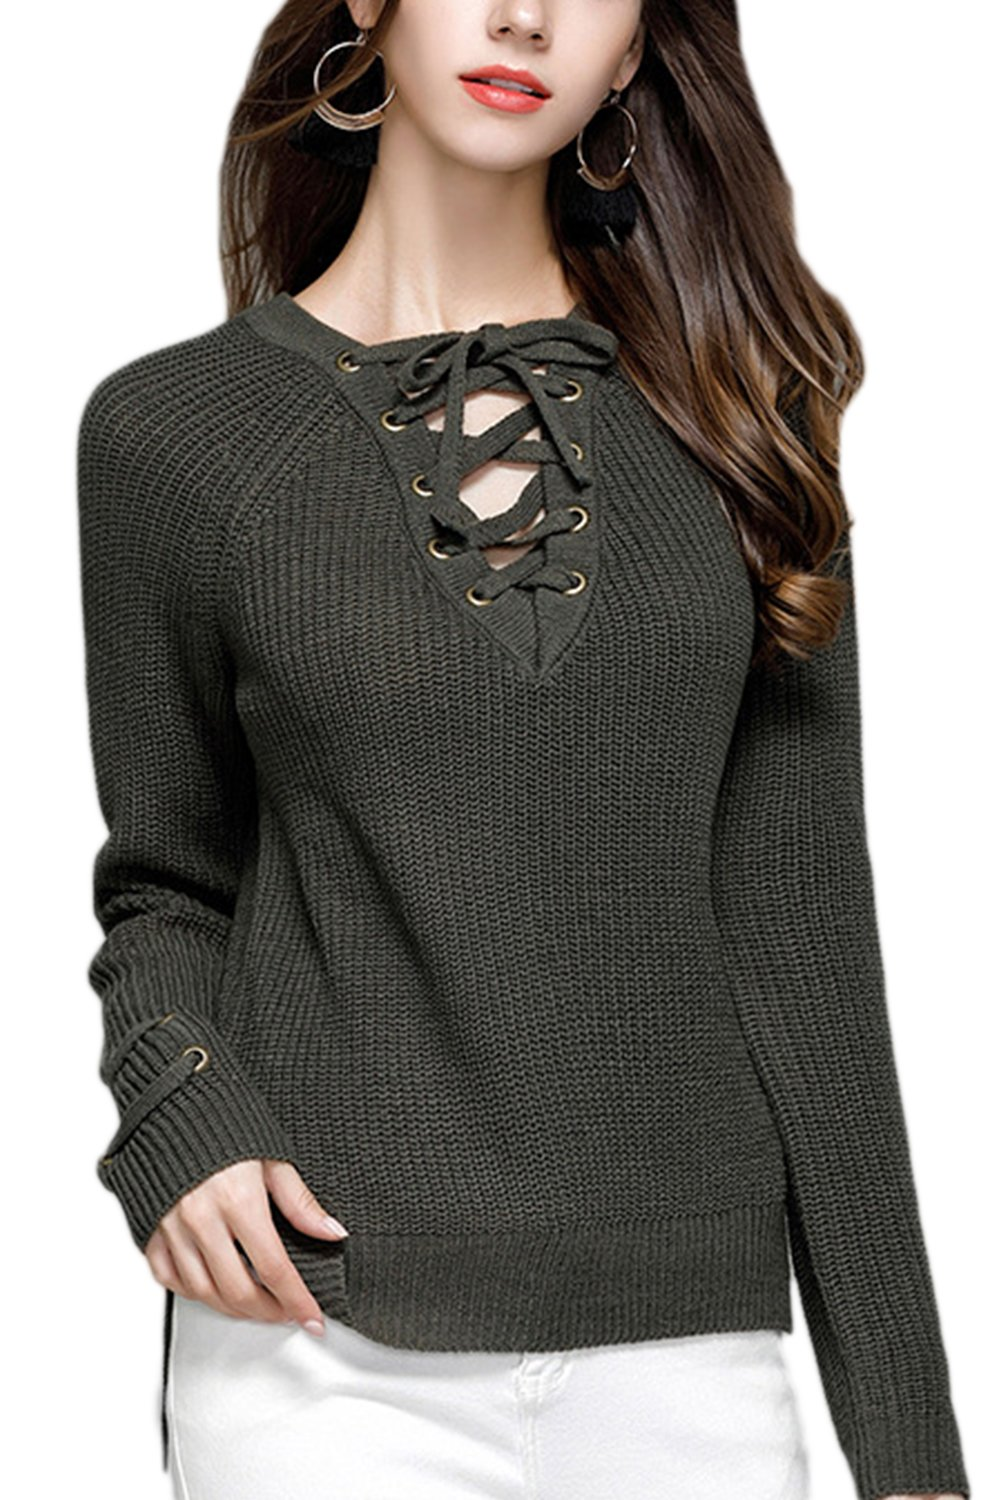 Women Bandage Tie Long Sleeved Deep V-Neck Knitted Base Shirt Sweater Top CAFESPWLKJ007